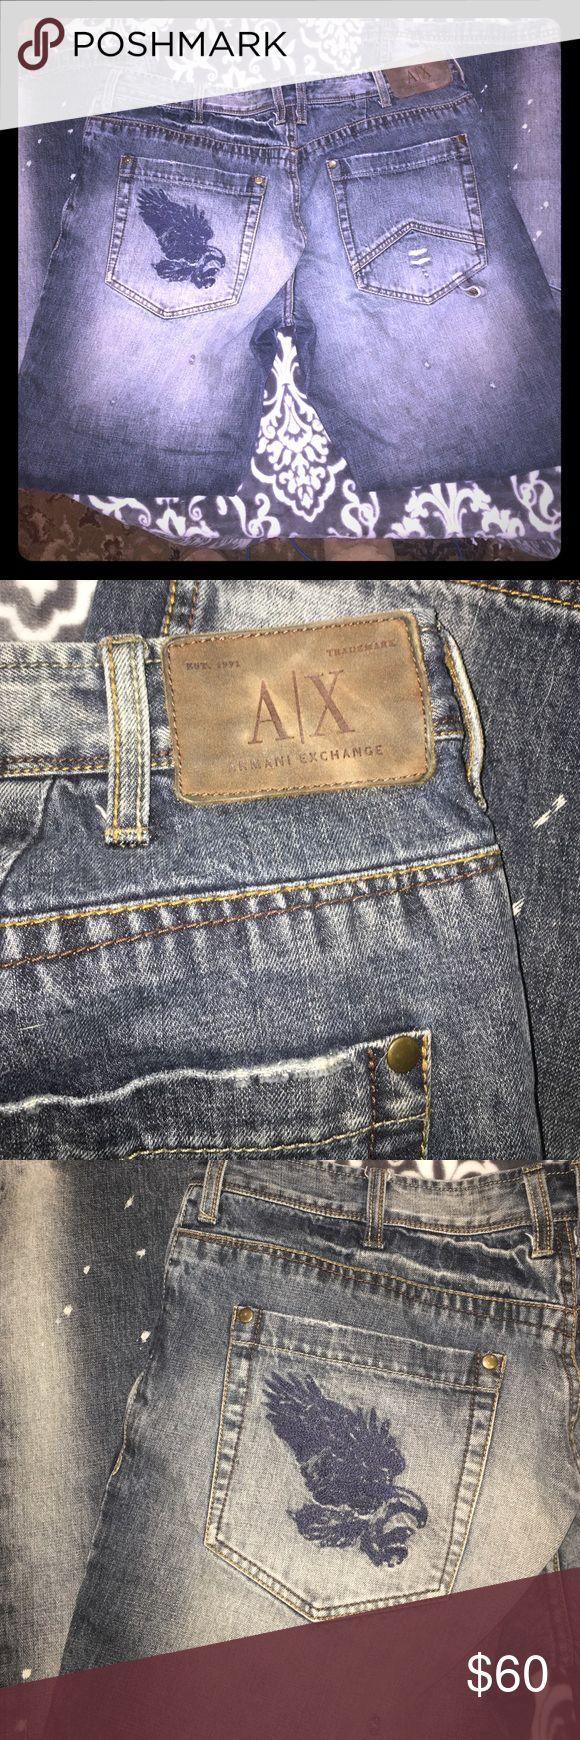 """Men's Armani Exchange Distressed Jeans 36 Long Men's Armani Exchange Distressed Style Blue Jeans, with a design on the rear pocket. Size 36 Long. Very Rare. Everything is our """"closet"""" is from our actual closets and it must go! We accept 95% of first offers, with no back and forth haggling, we just want these excess clothes gone. Check out our closet and make it a bundle. A/X Armani Exchange Jeans Relaxed"""